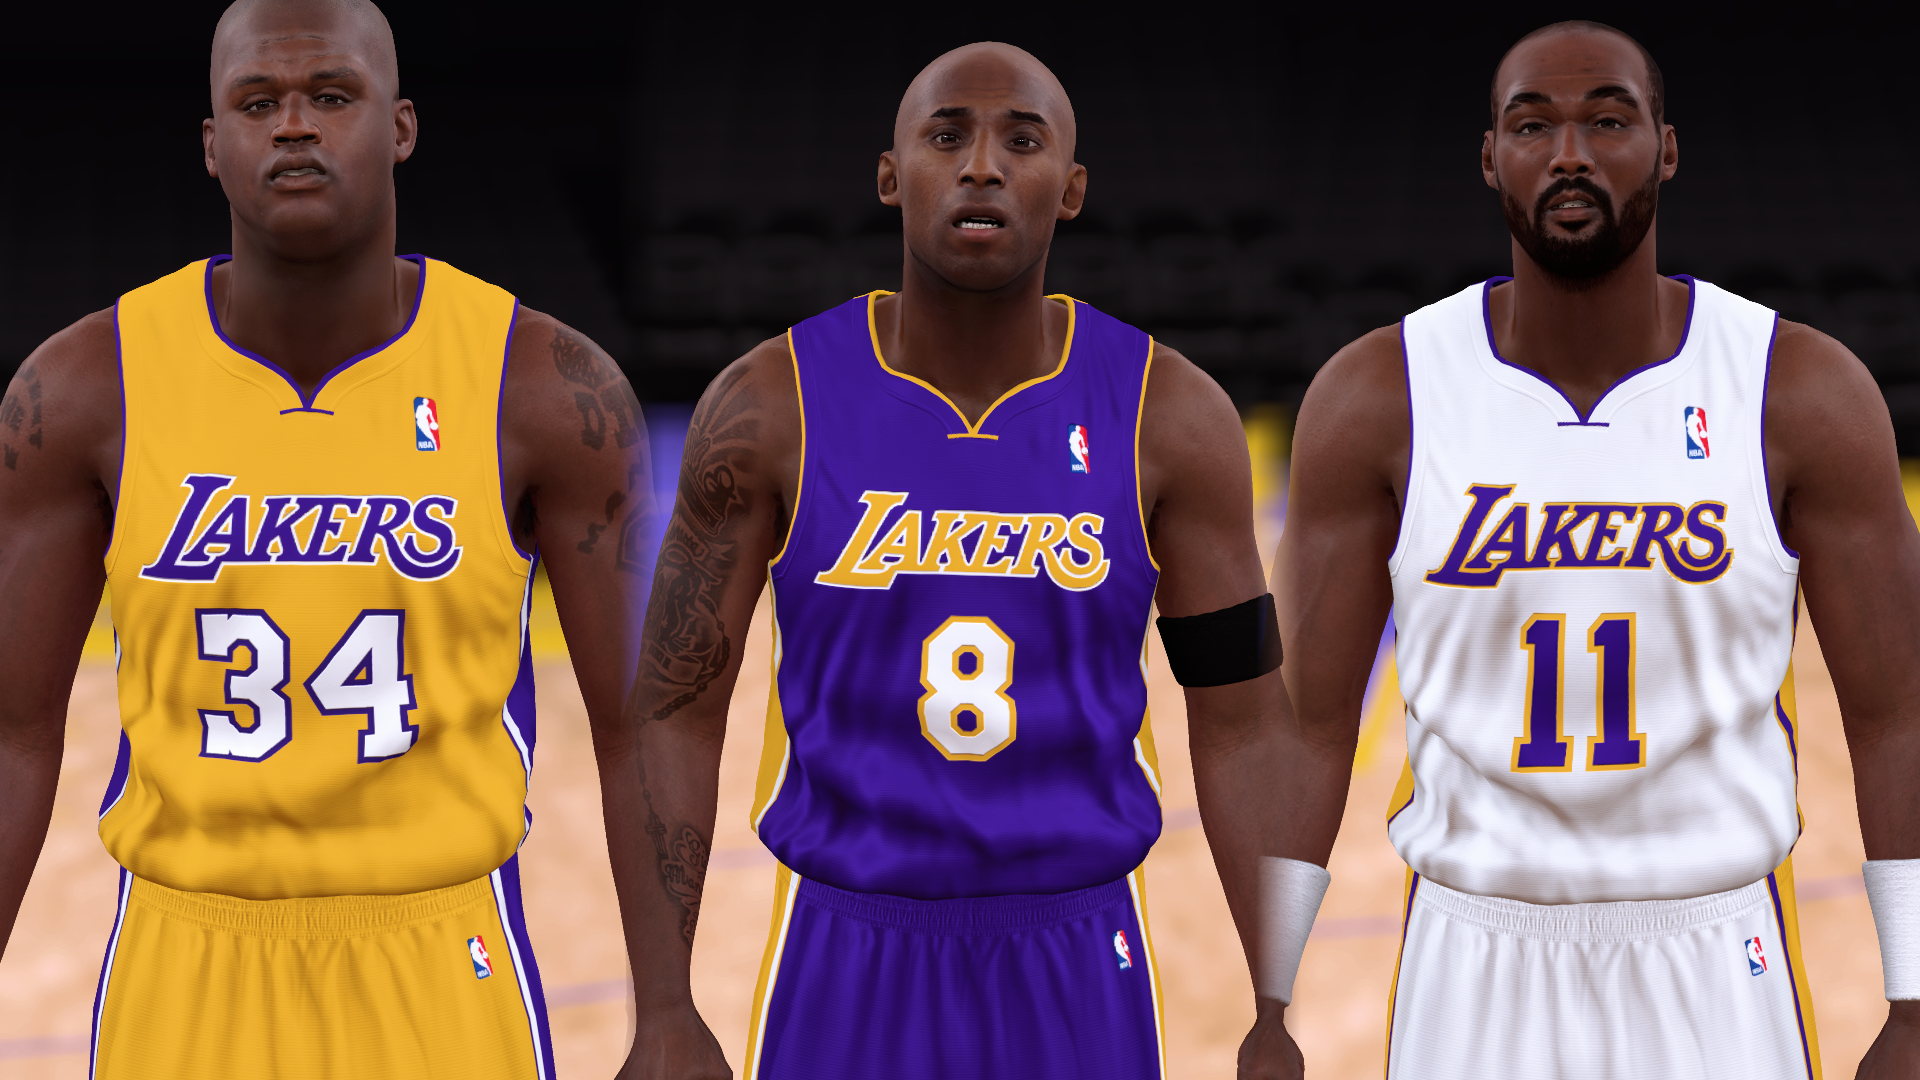 2003-2004 Lakers Jerseys - PeacemanNOT